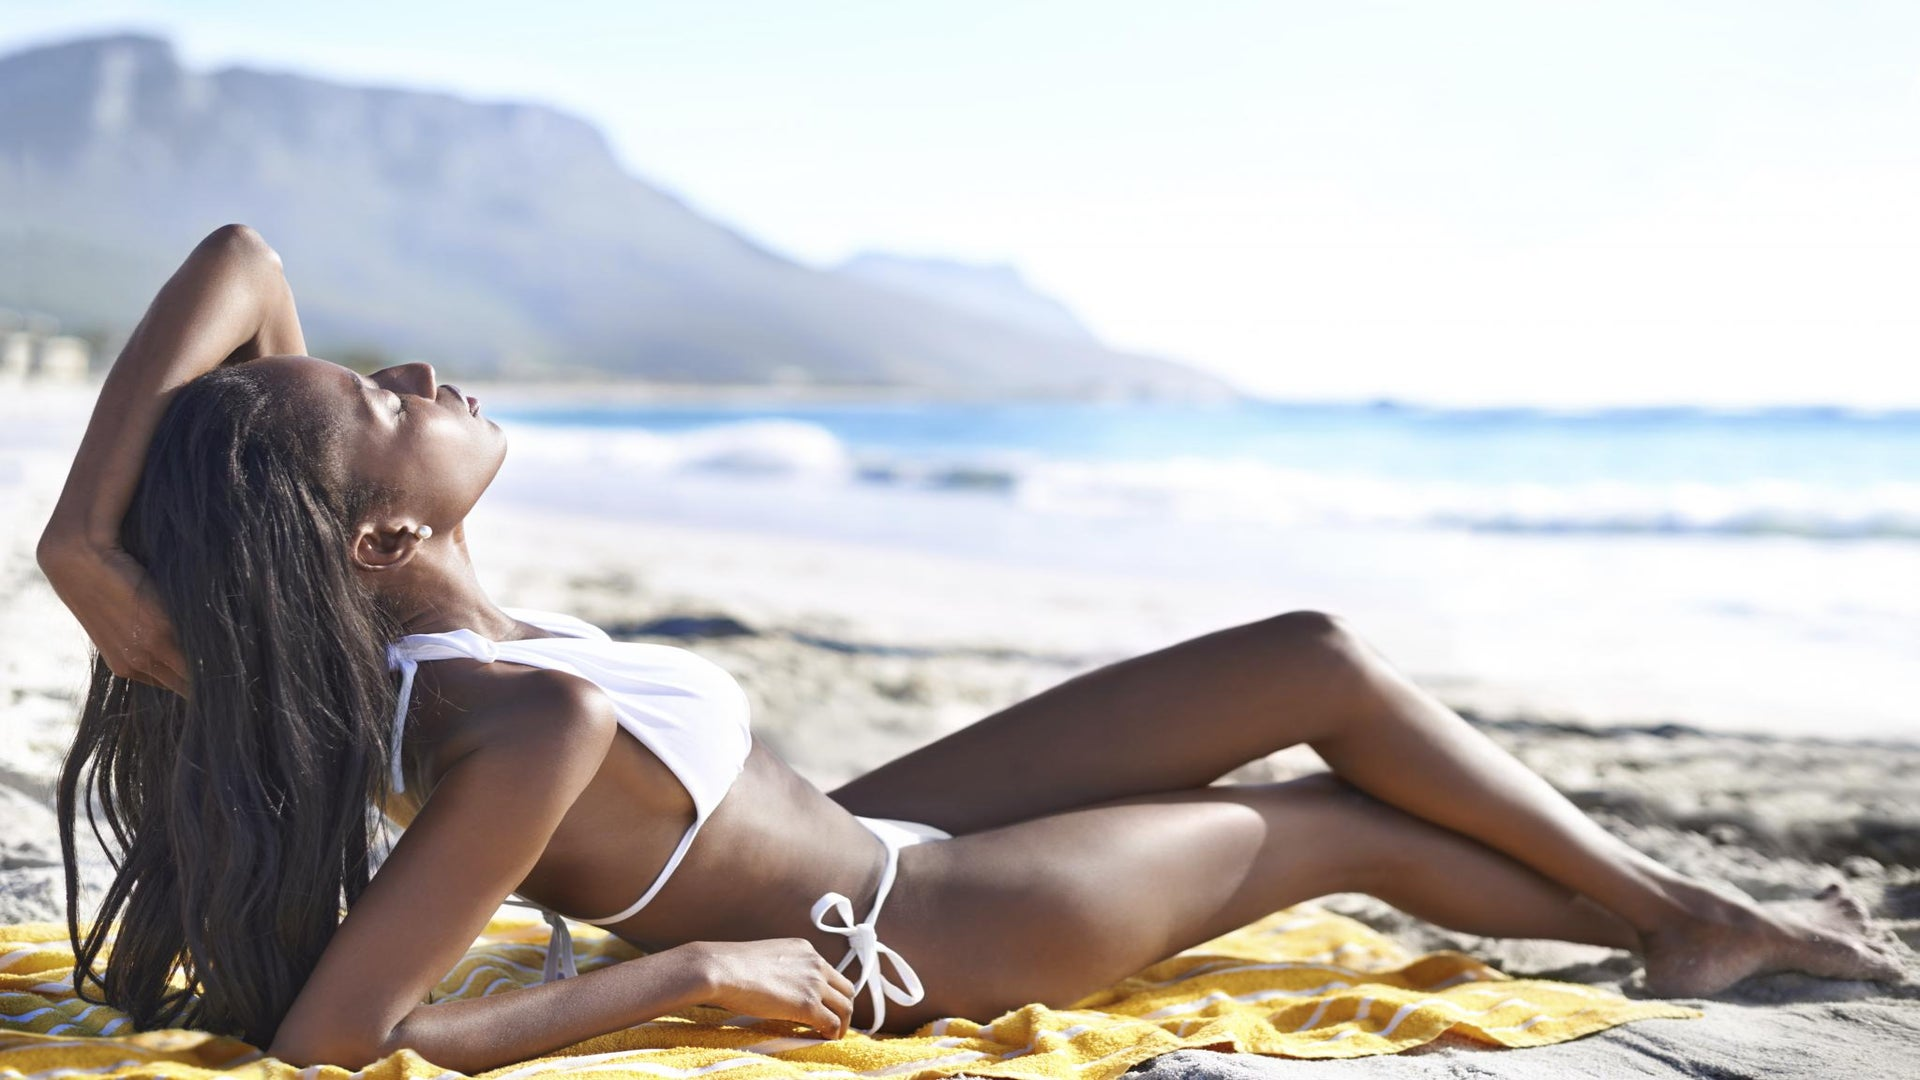 We Tried It: Spray Tanning